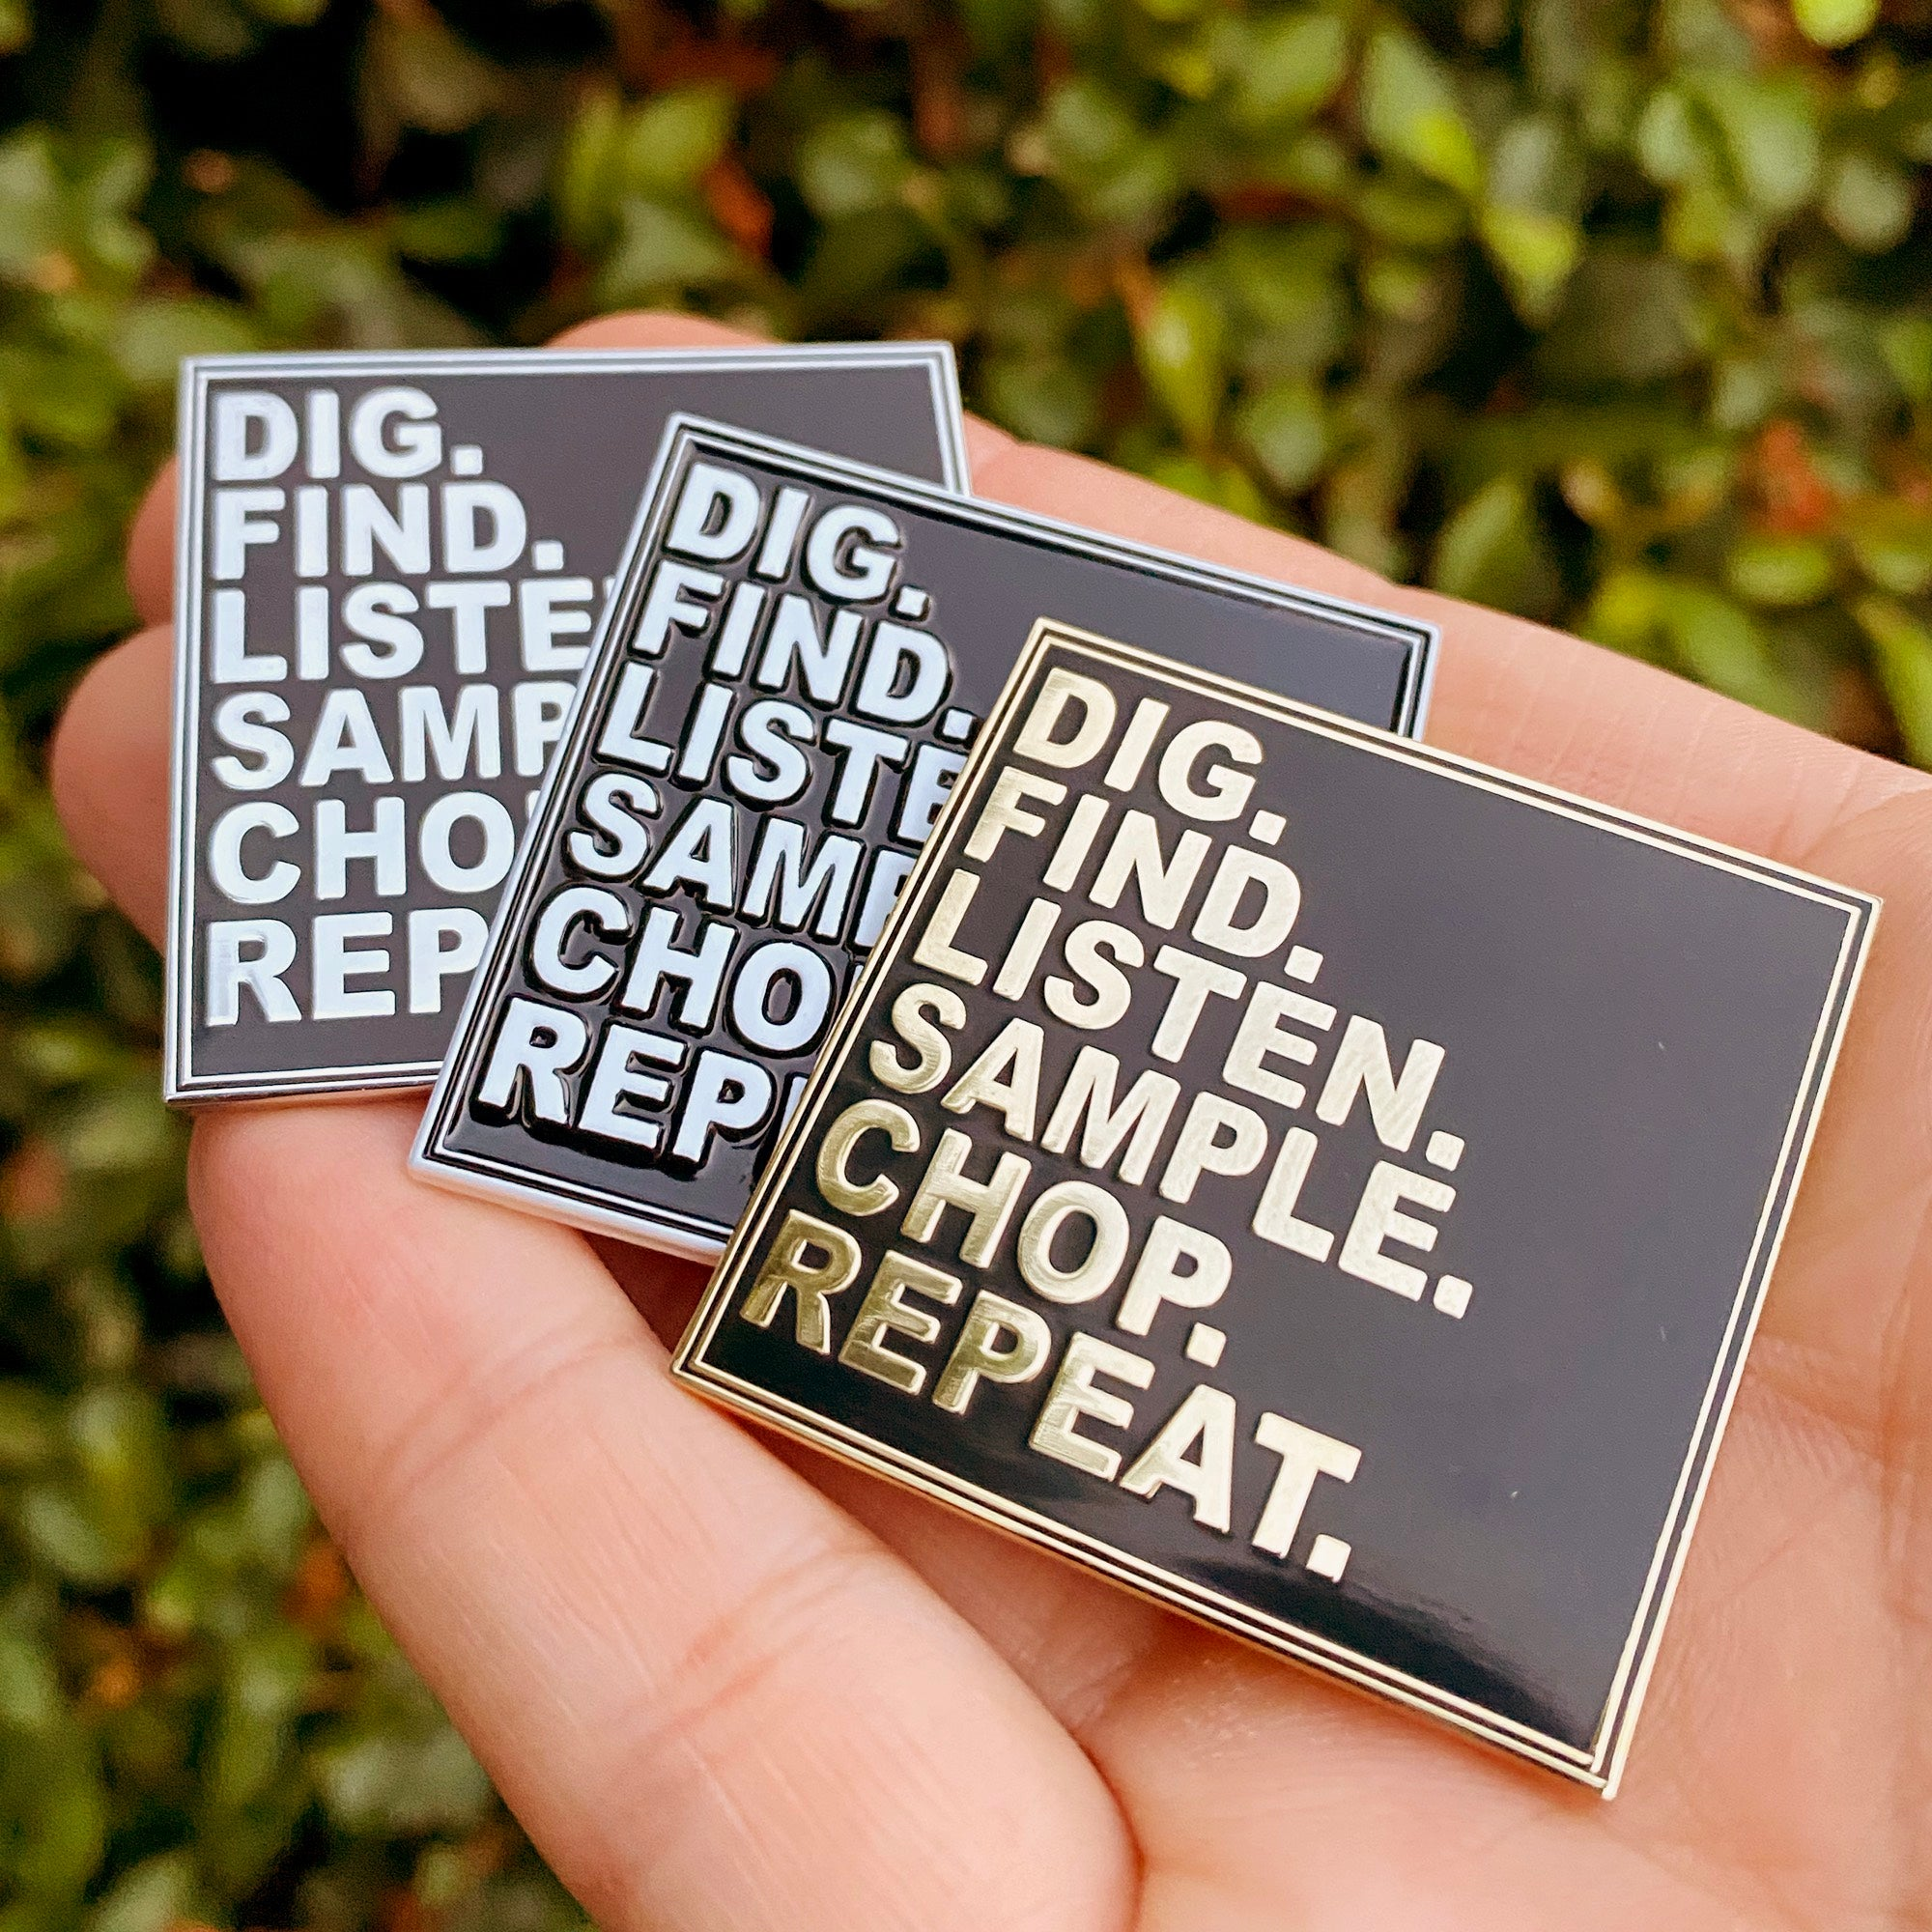 Dig.Find.Listen.Sample. Chop. Repeat. Enamel Pin